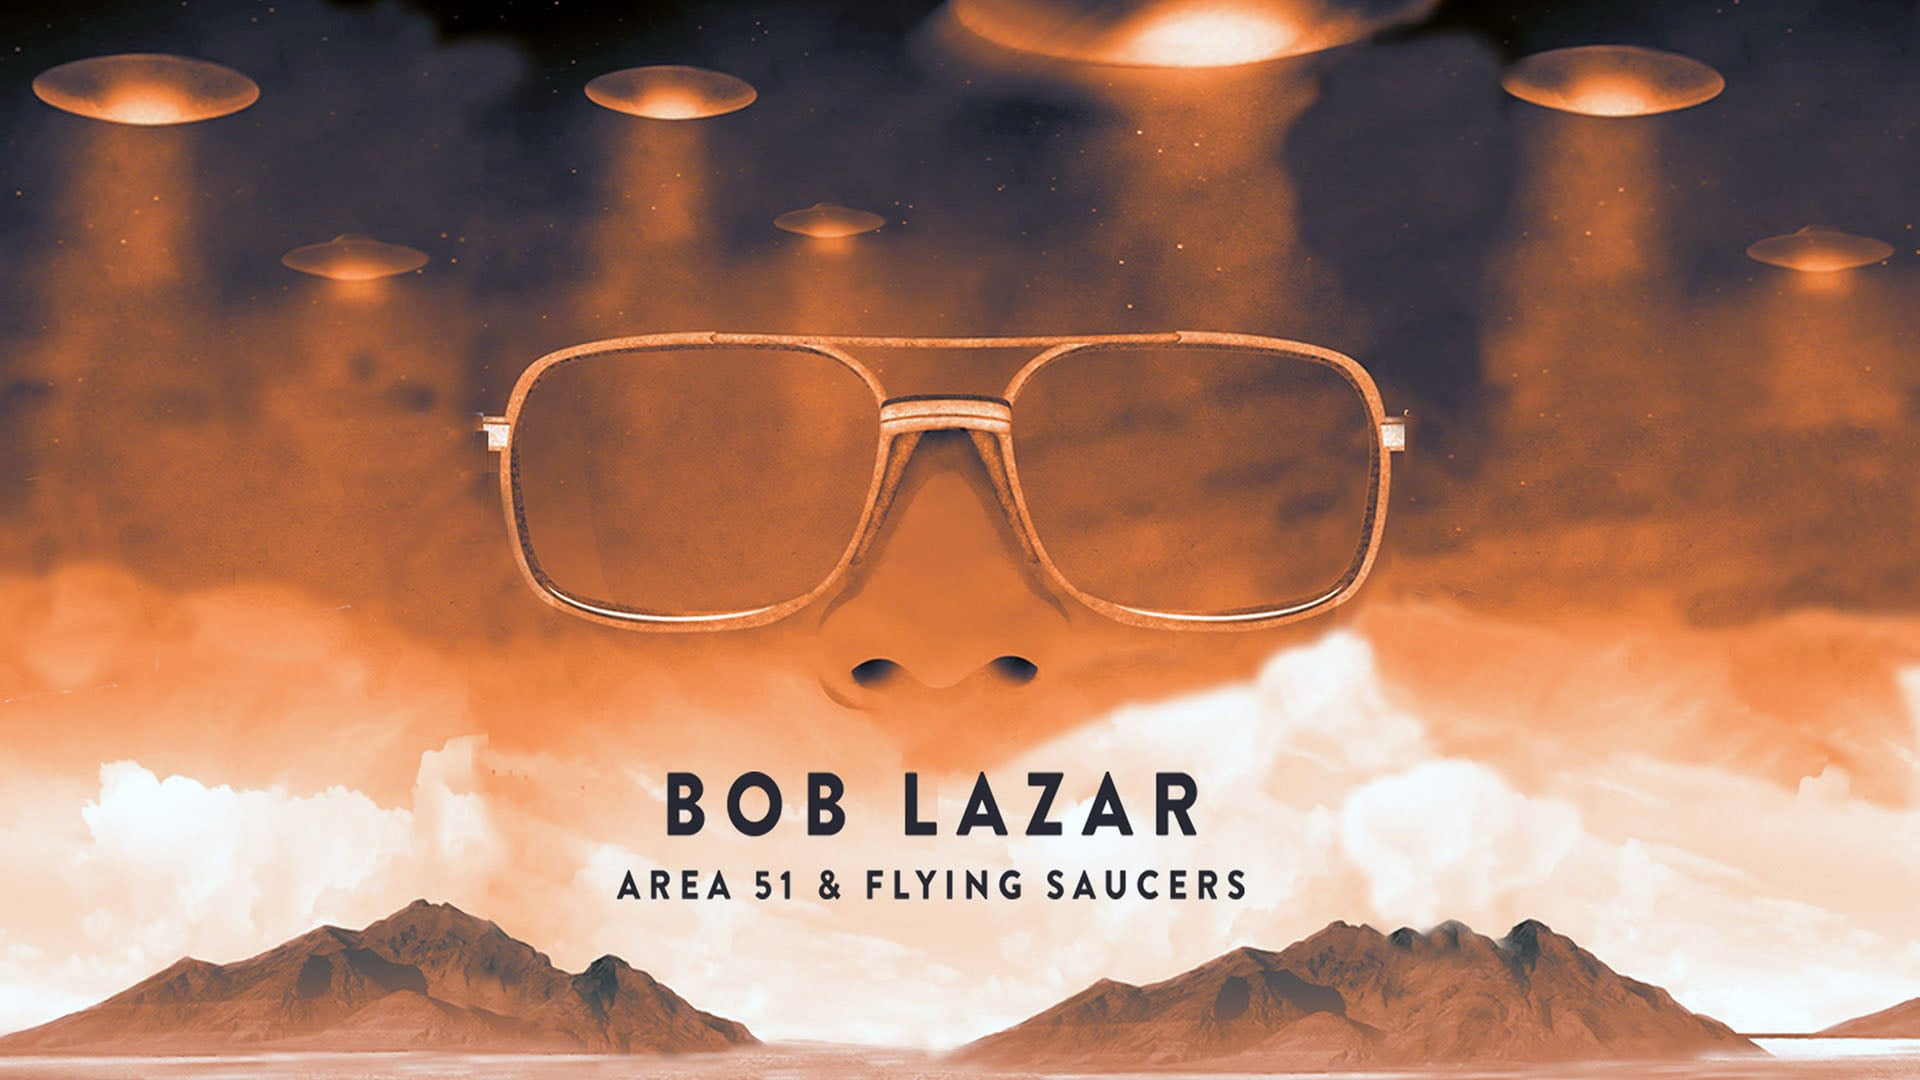 bob lazar area 51 and flying saucers 1